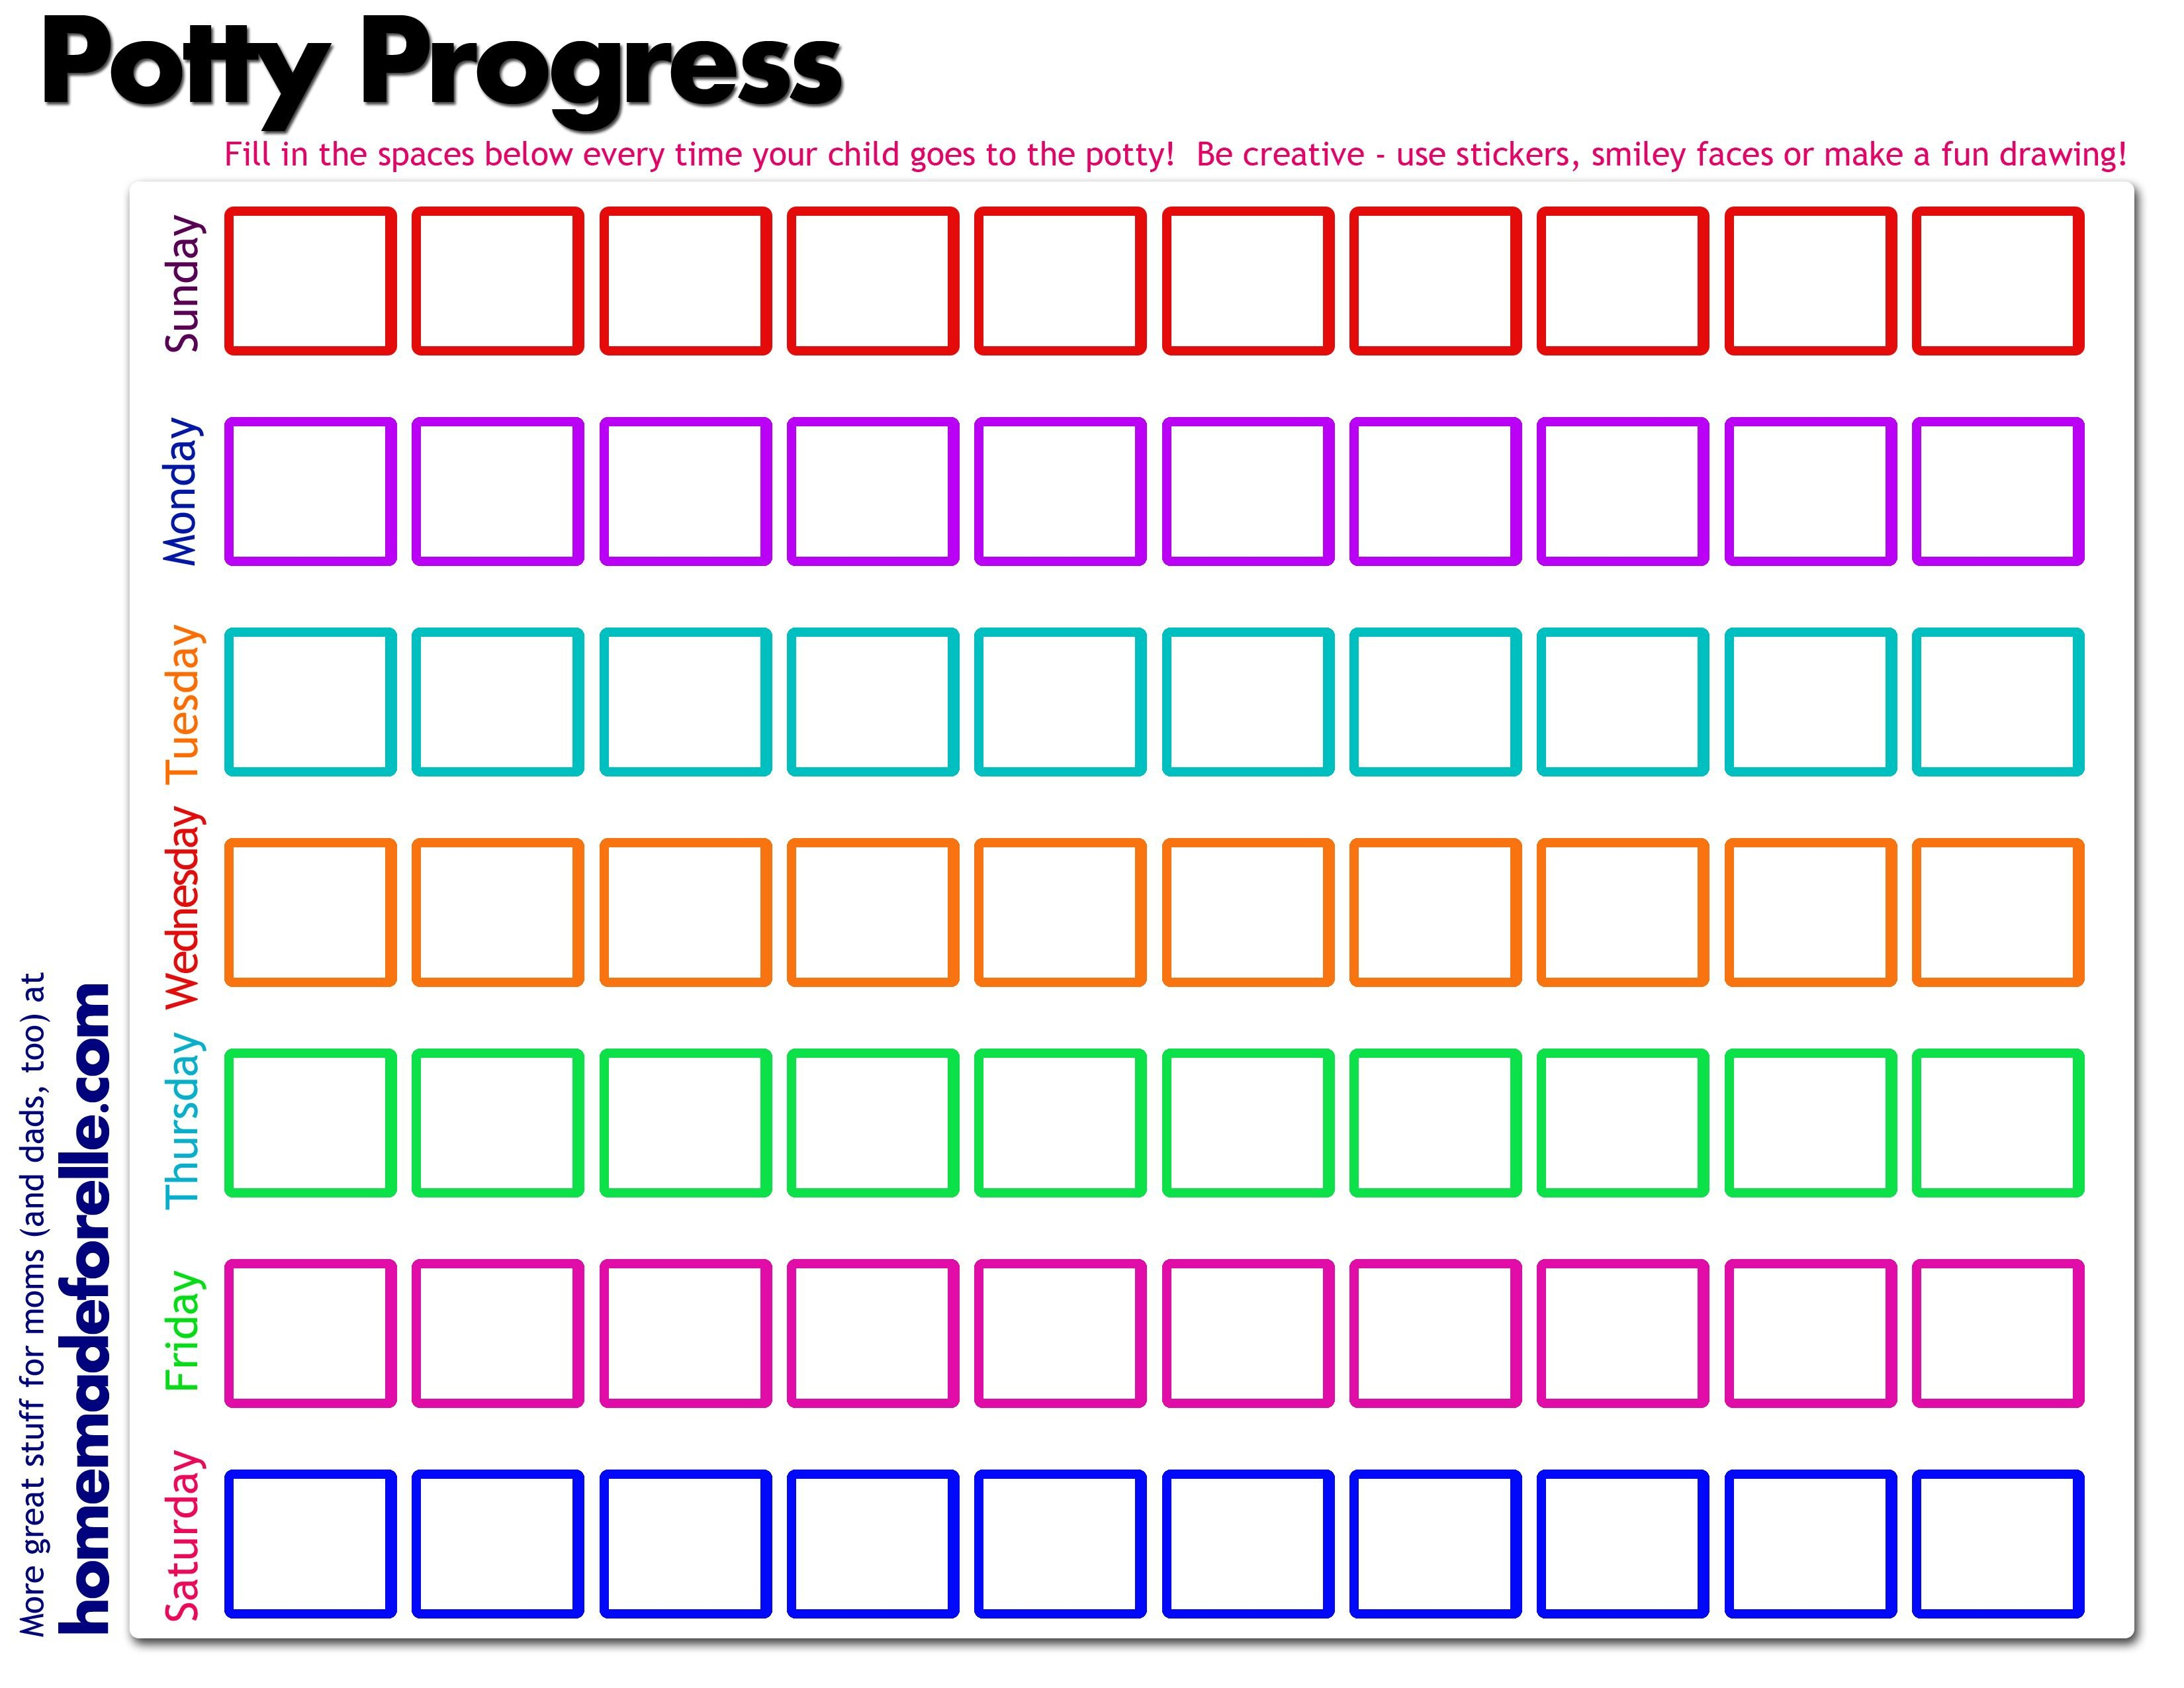 Potty Training Regression | Potty Training Sticker Chart Create A Chart From Monday To Friday